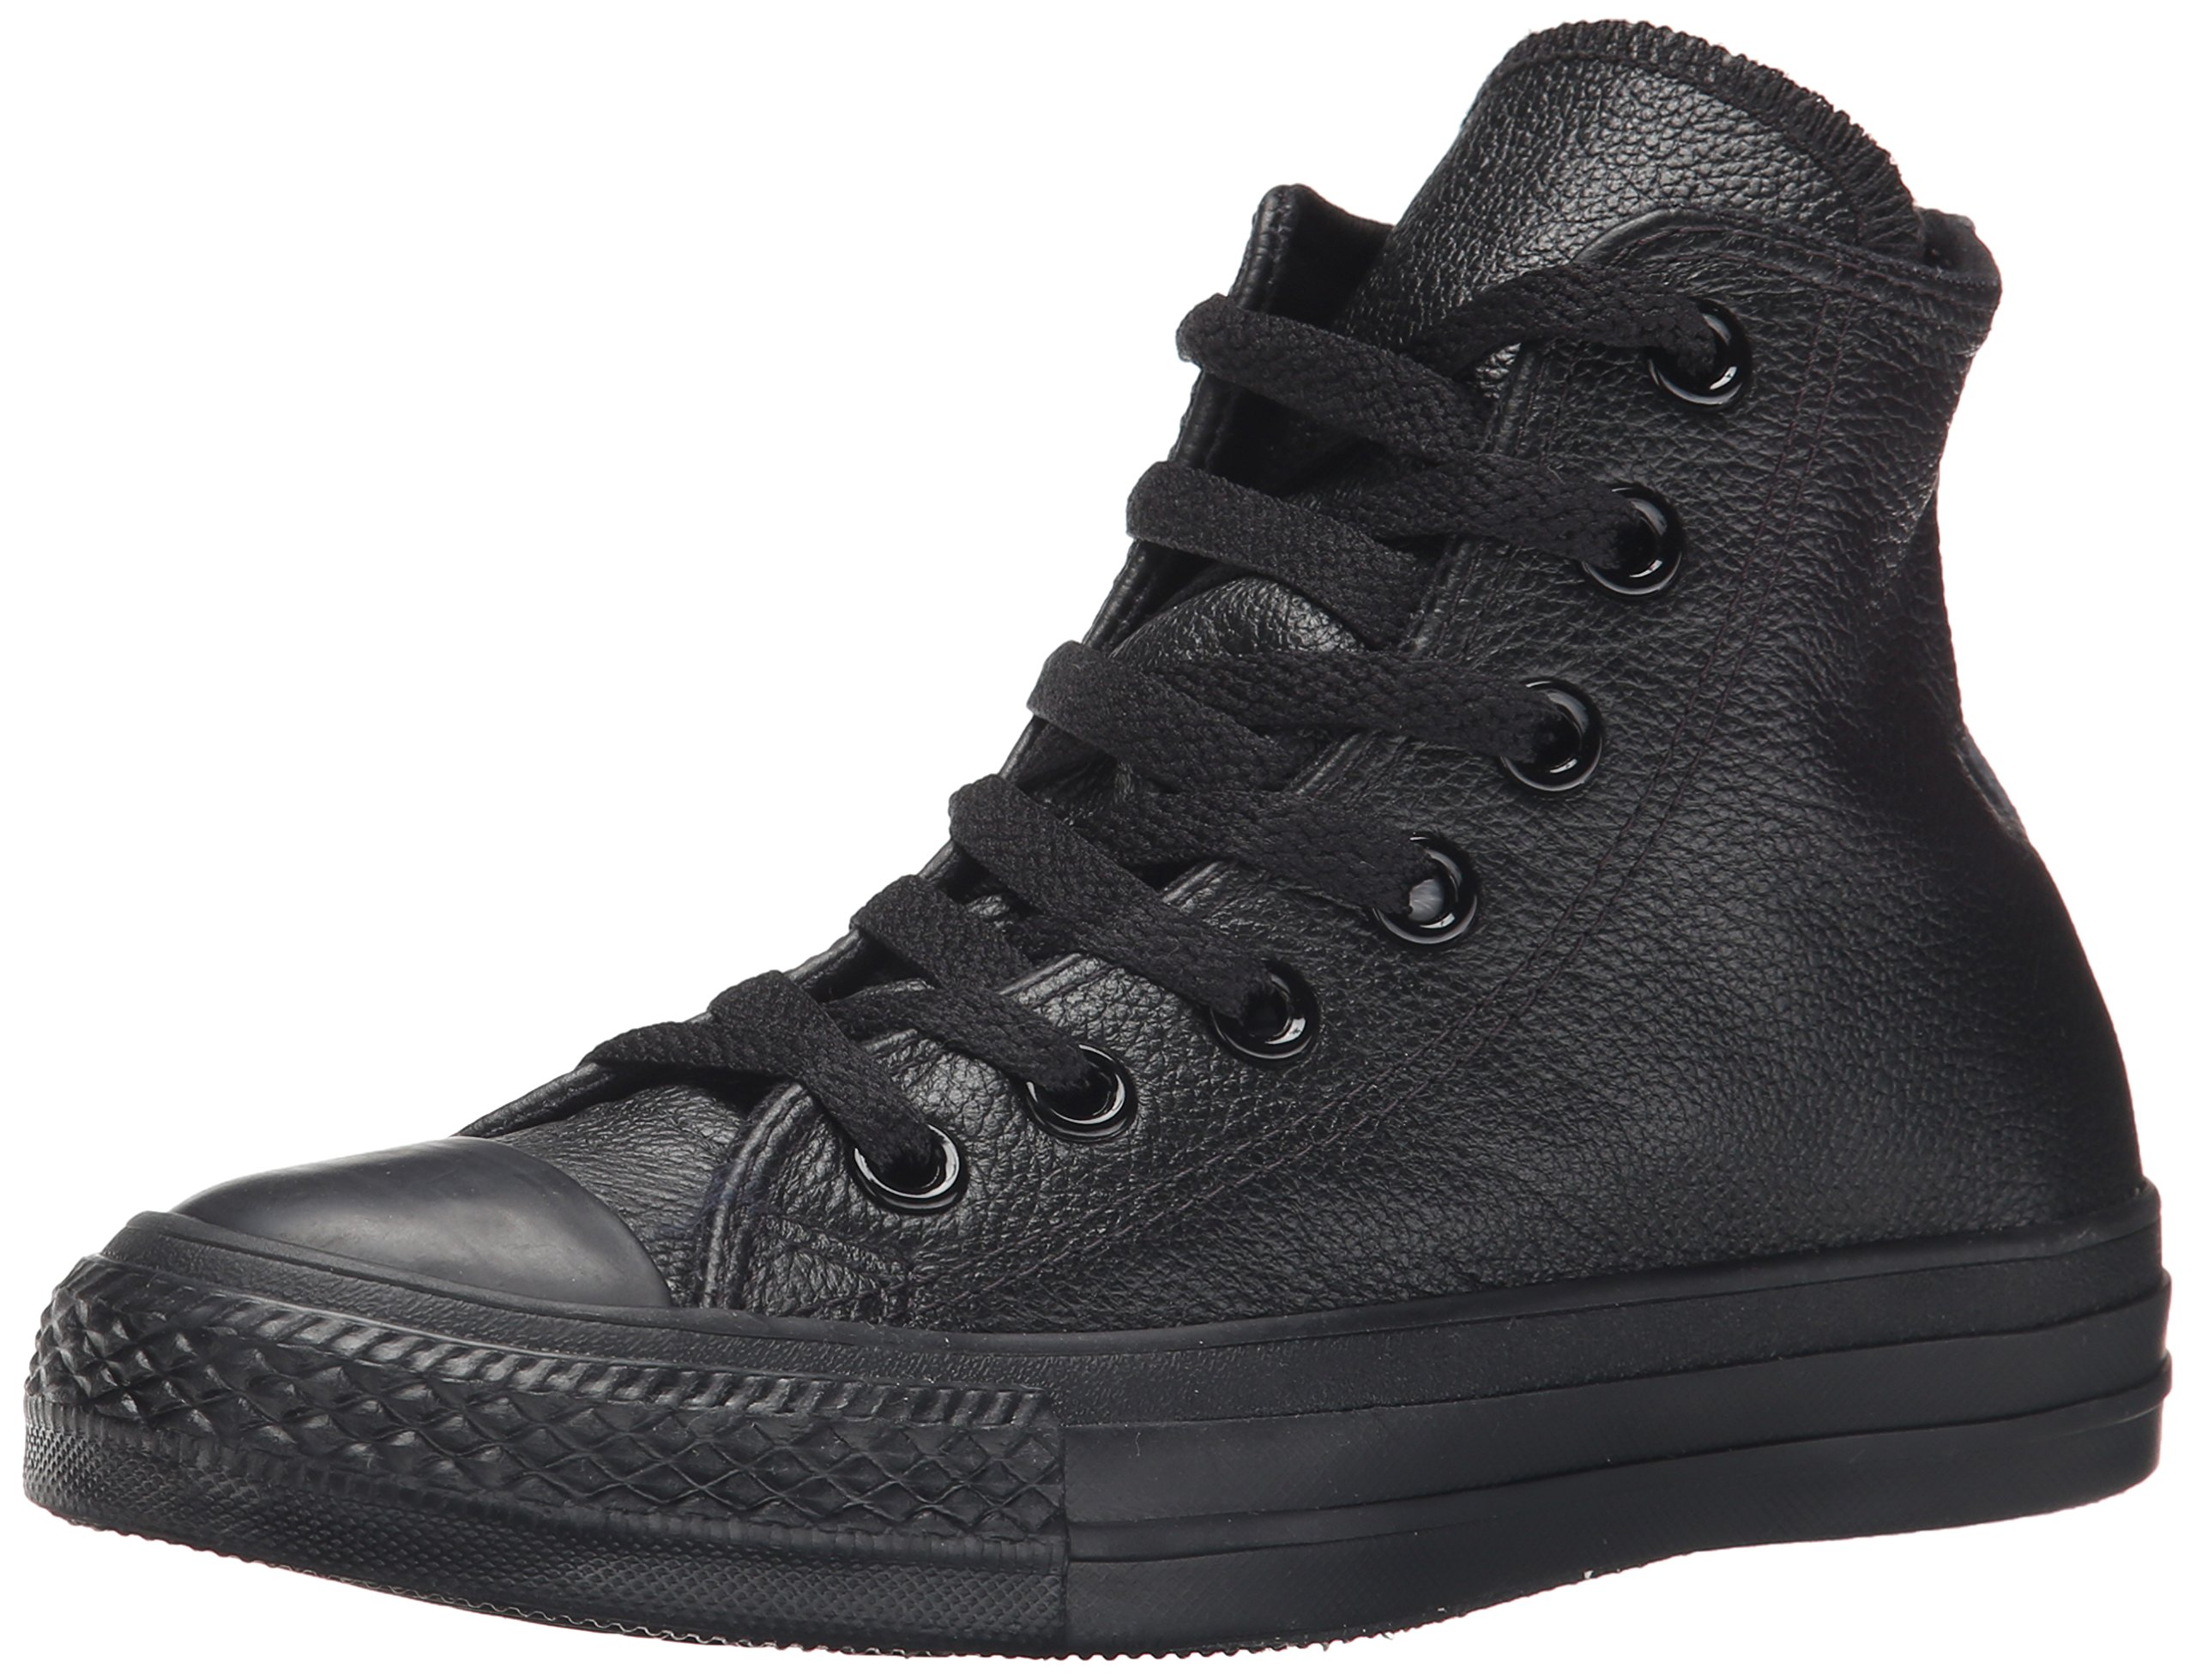 8bbe762a03b9 Galleon - Converse Chuck Taylor All Star Leather Hi